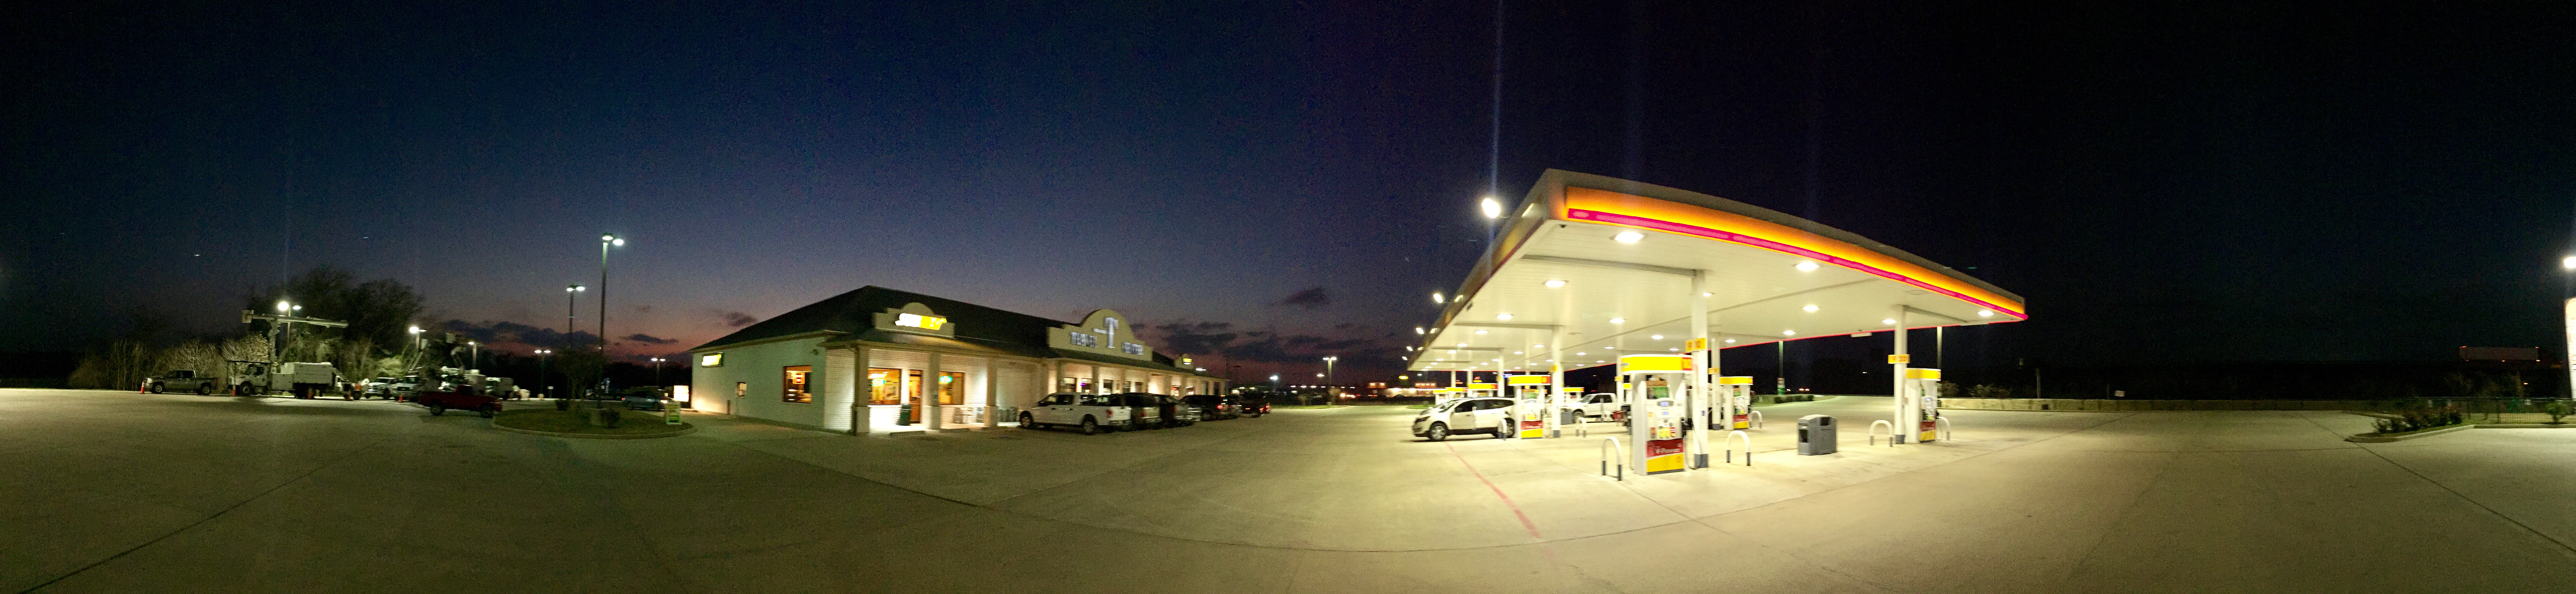 Bar T Travel Center and Truck Stop